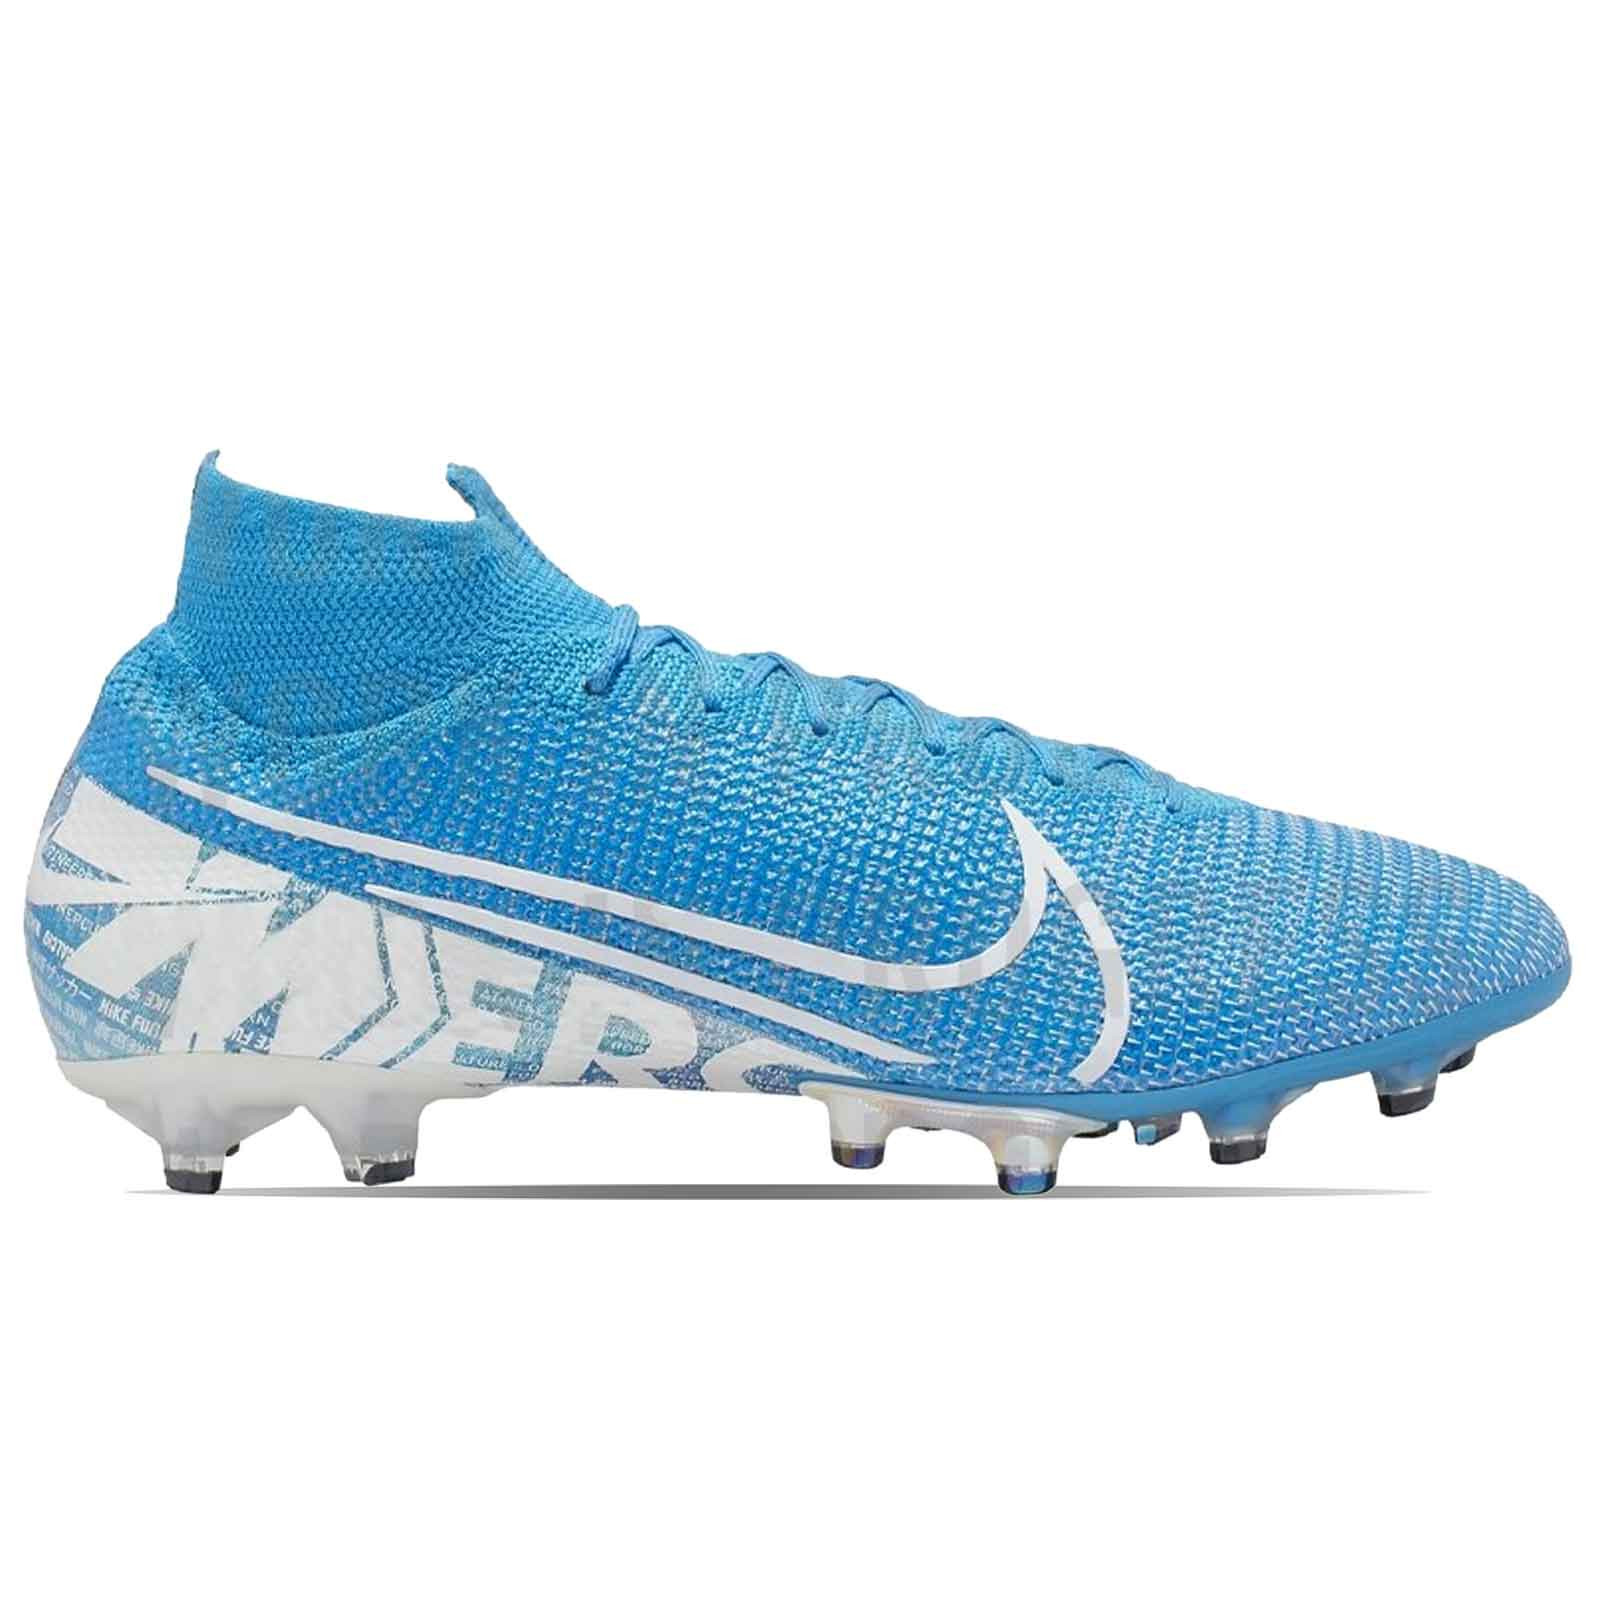 Nike Mercurial Superfly 7 Elite AG PRO